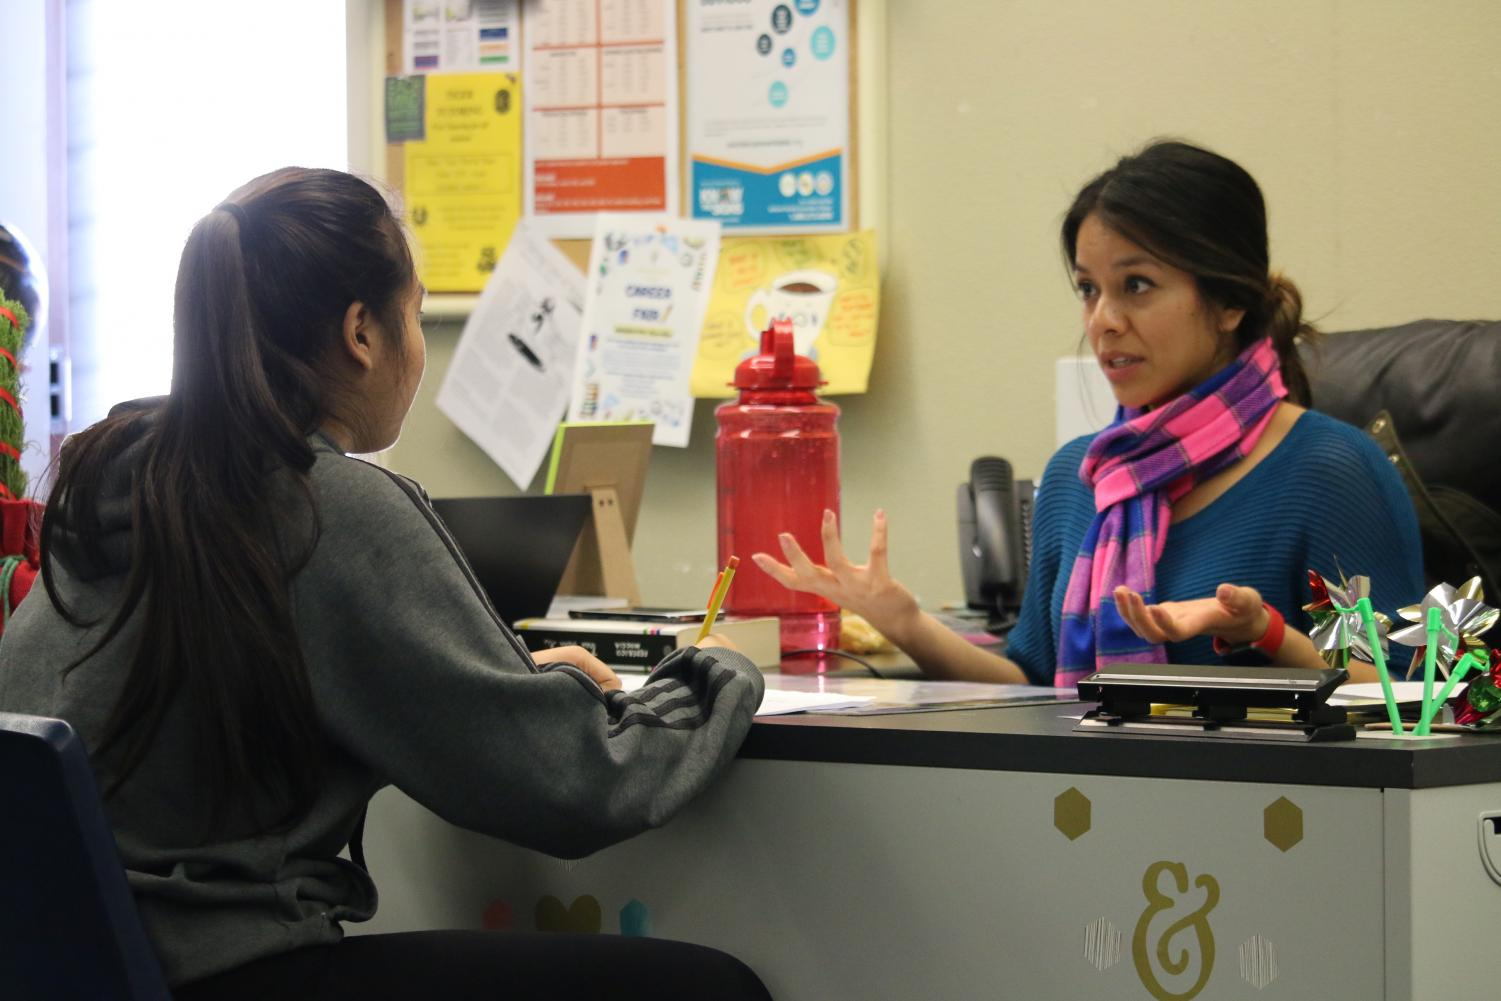 With the implementation of the Wellness Center at RHS, many students have begun seeking help. The Wellness Center is working to use data to identify additional students who need assistance.